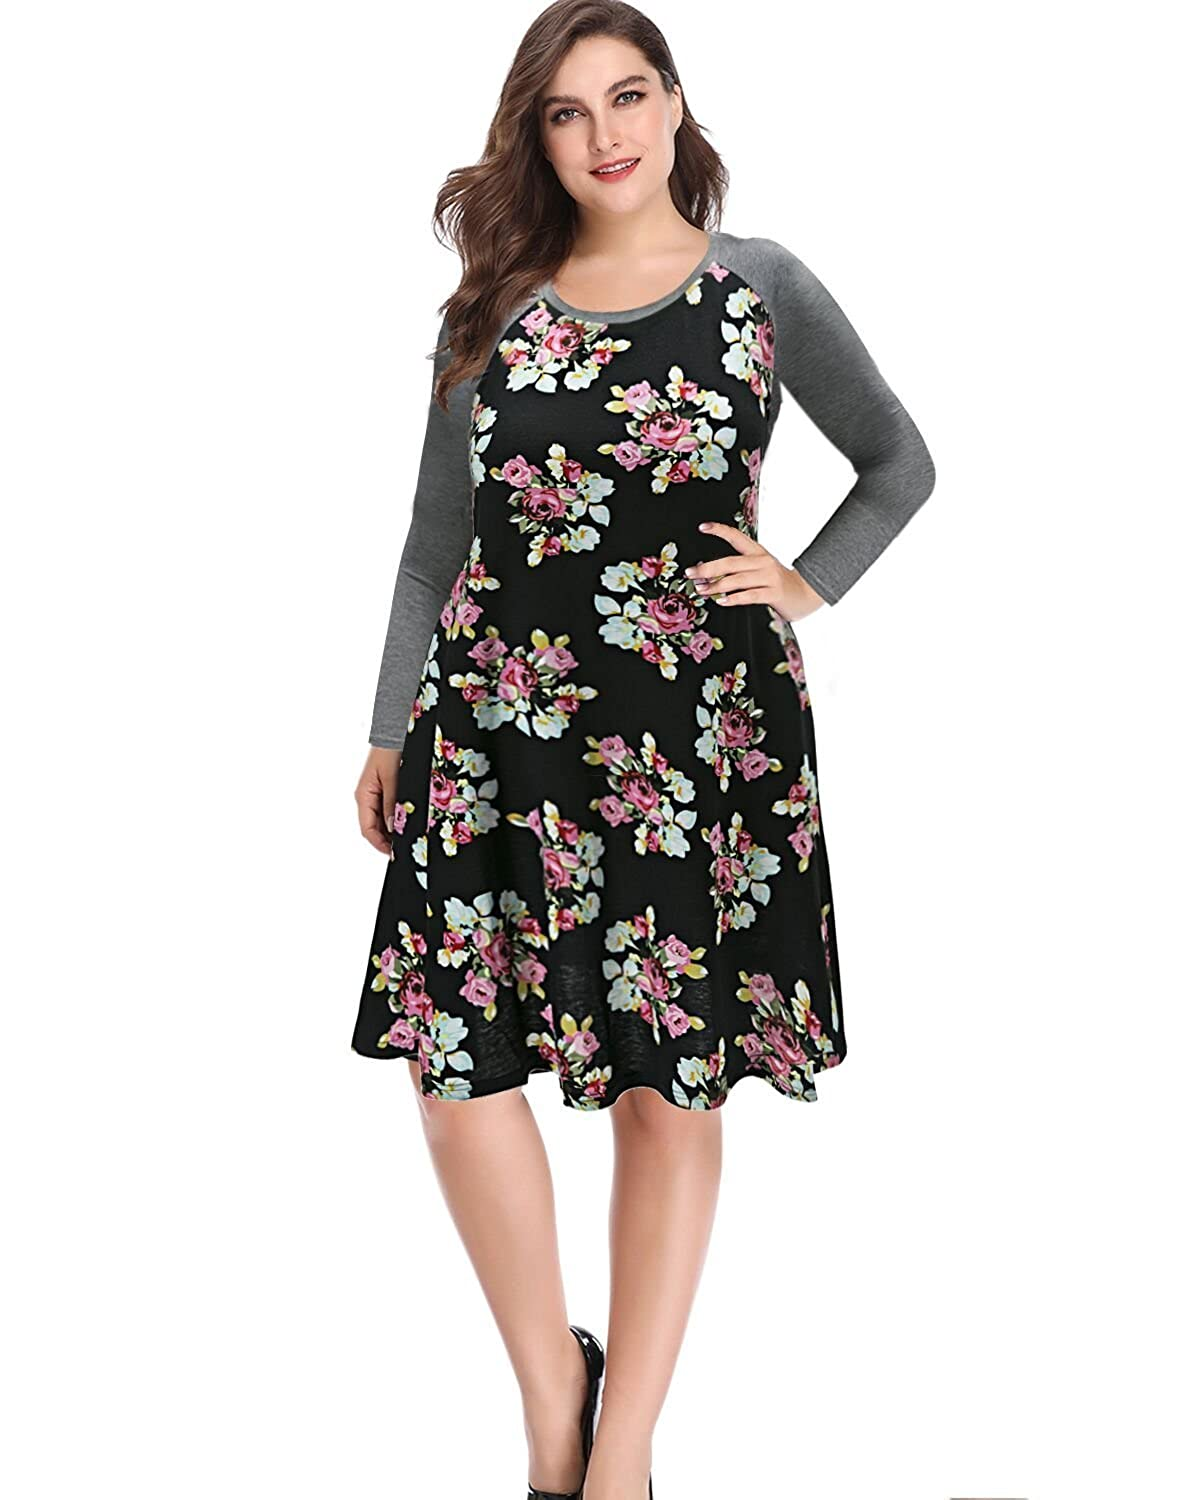 d98e093f0a It is comfortable well-made casual dress should fit everybody. With  gorgeous scalloped and classic A-line skirt, you\'ll feel ...